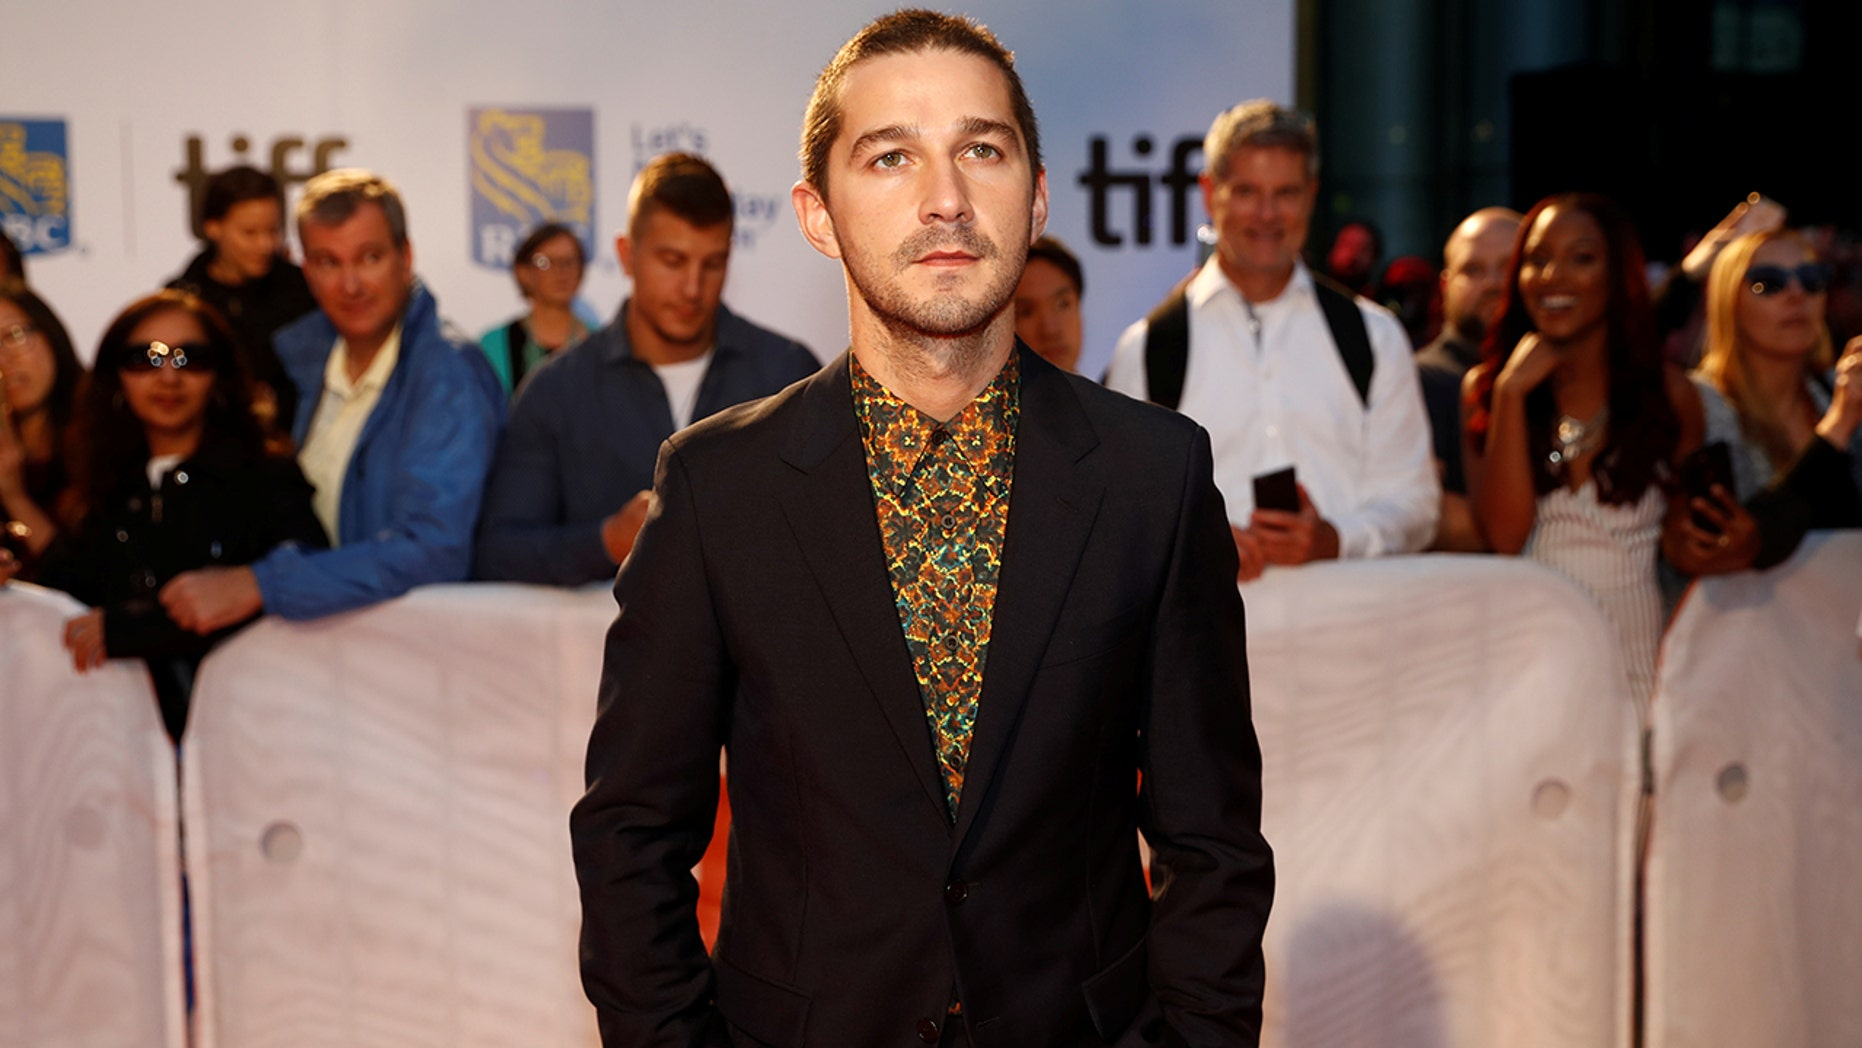 """Actor Shia LaBeouf poses as he arrives on the red carpet for the film """"Borg/McEnroe"""" at the Toronto International Film Festival (TIFF), in Toronto, Ontario, Canada, September 7, 2017.    REUTERS/Mark Blinch - RC121E1B7260"""